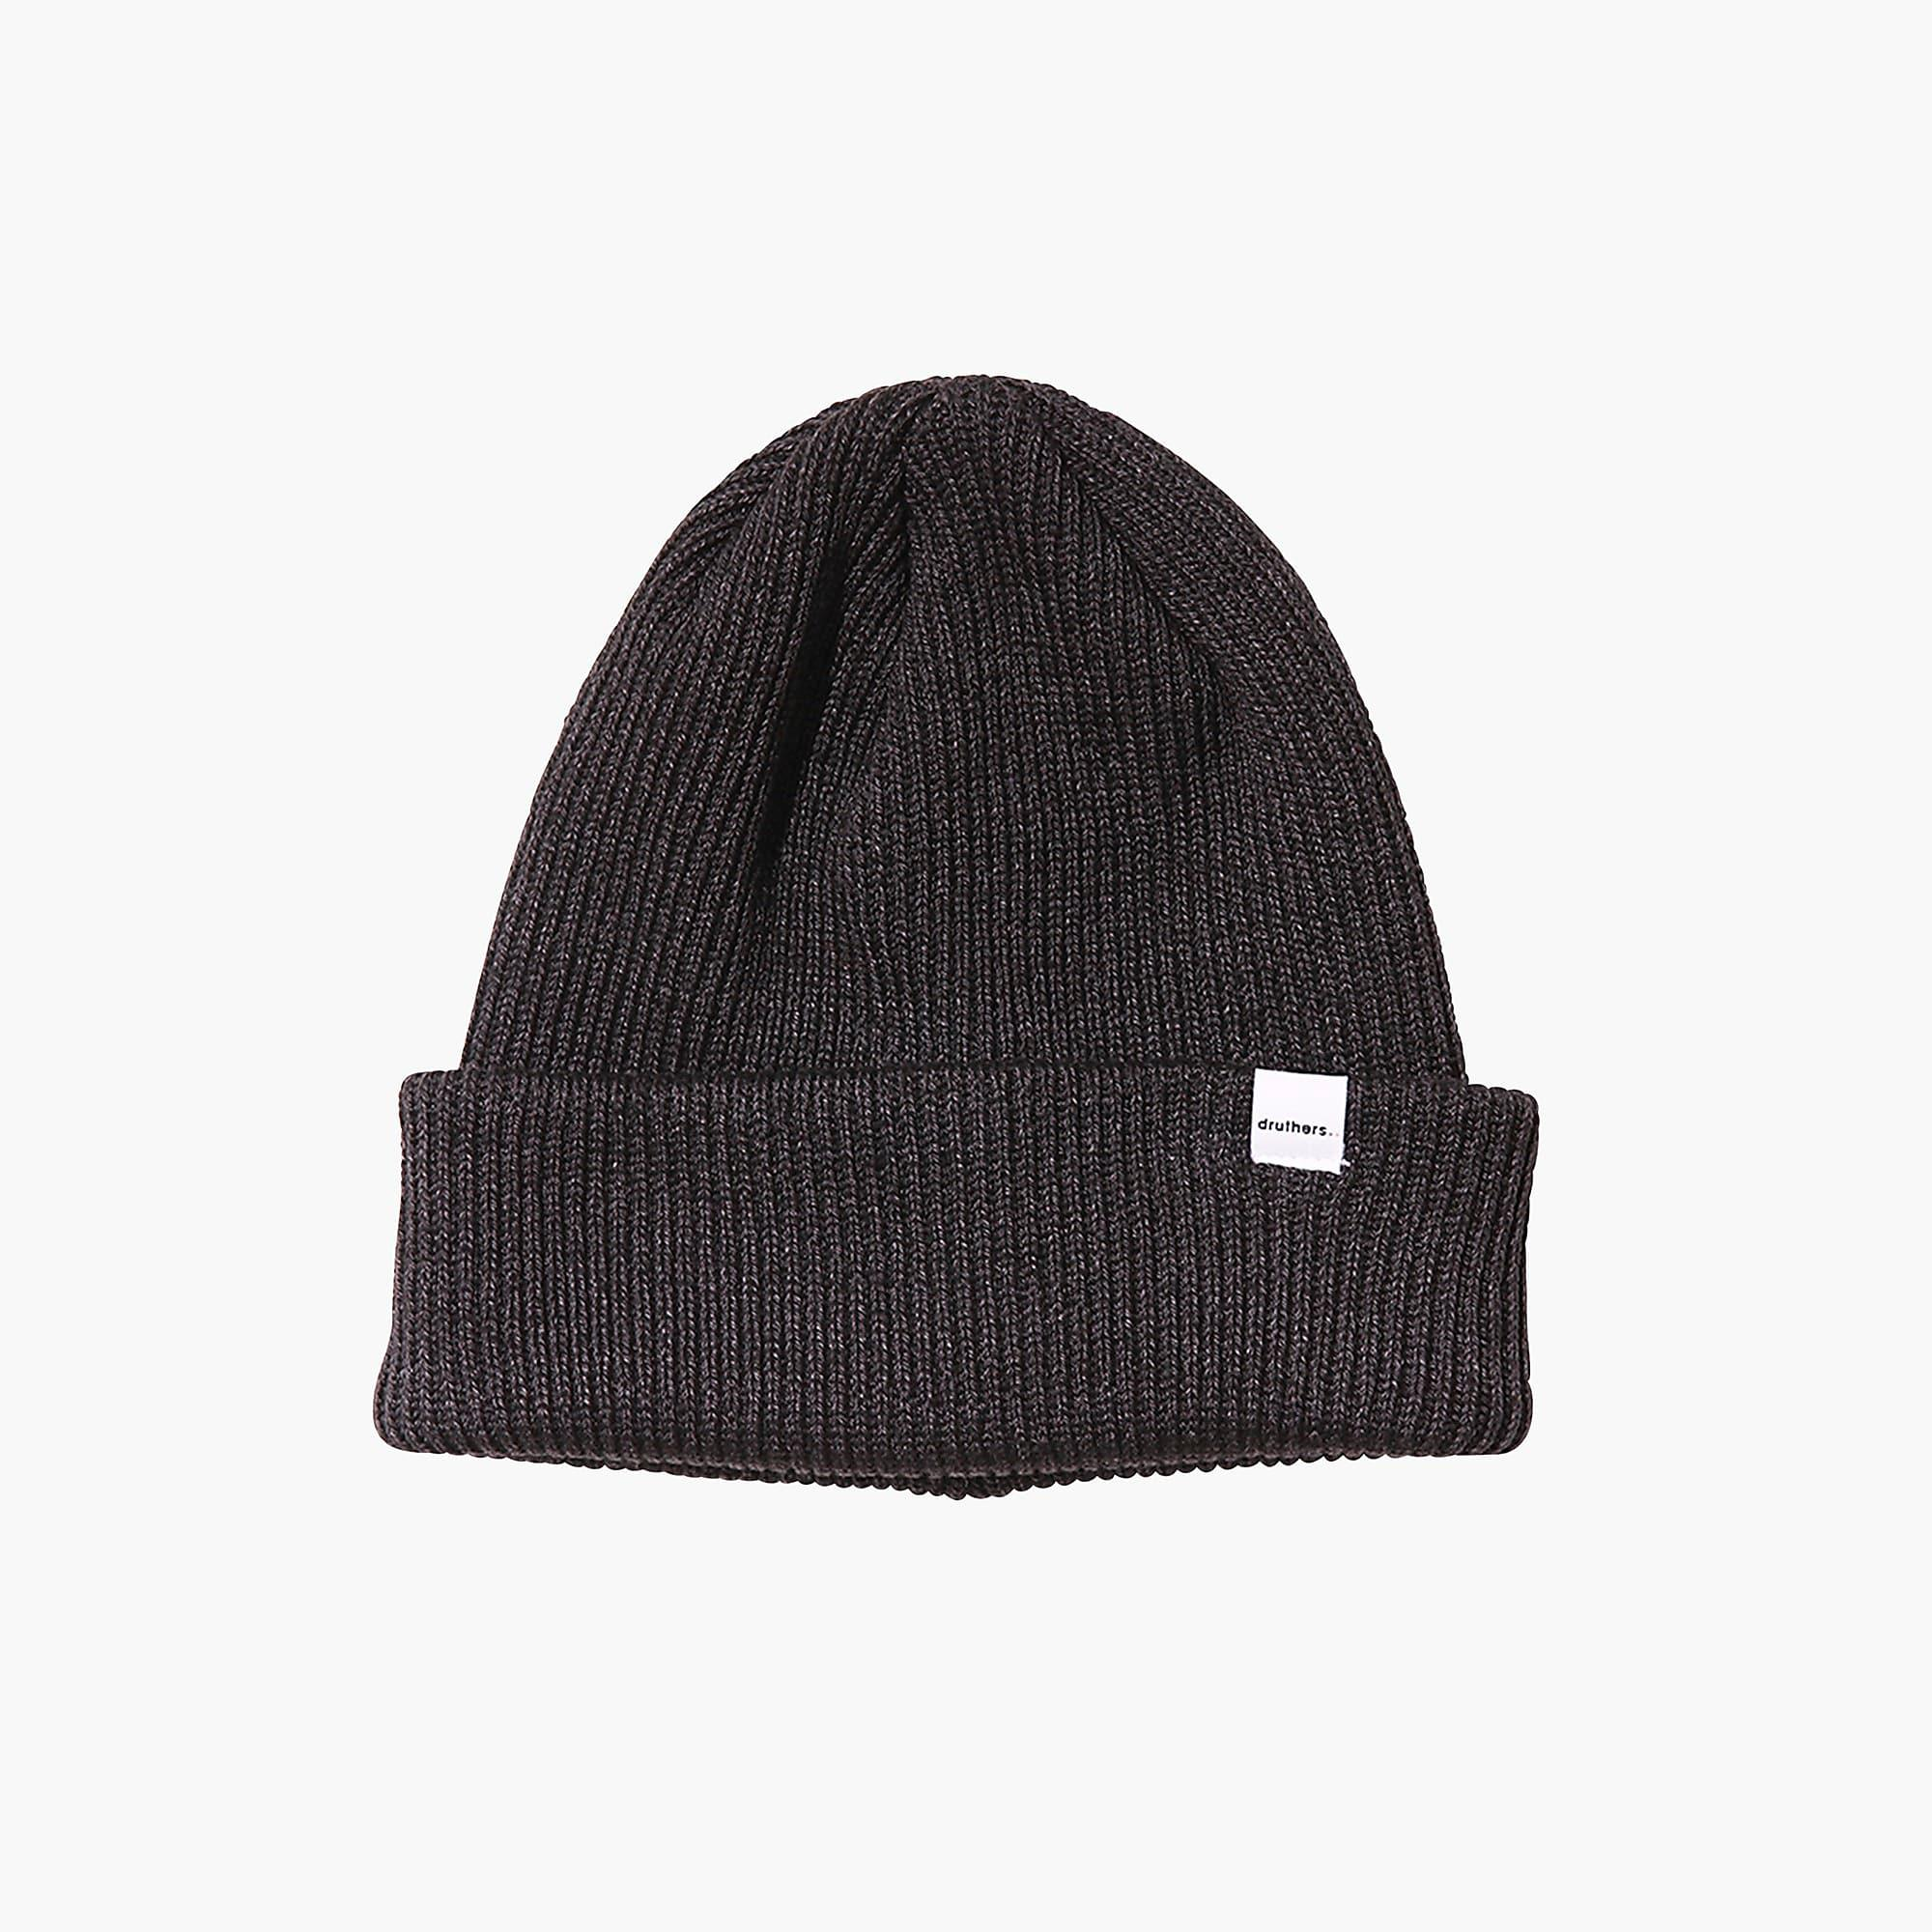 4f10fa52 Lyst - Druthers Recycled Cotton Knit Beanie in Gray for Men